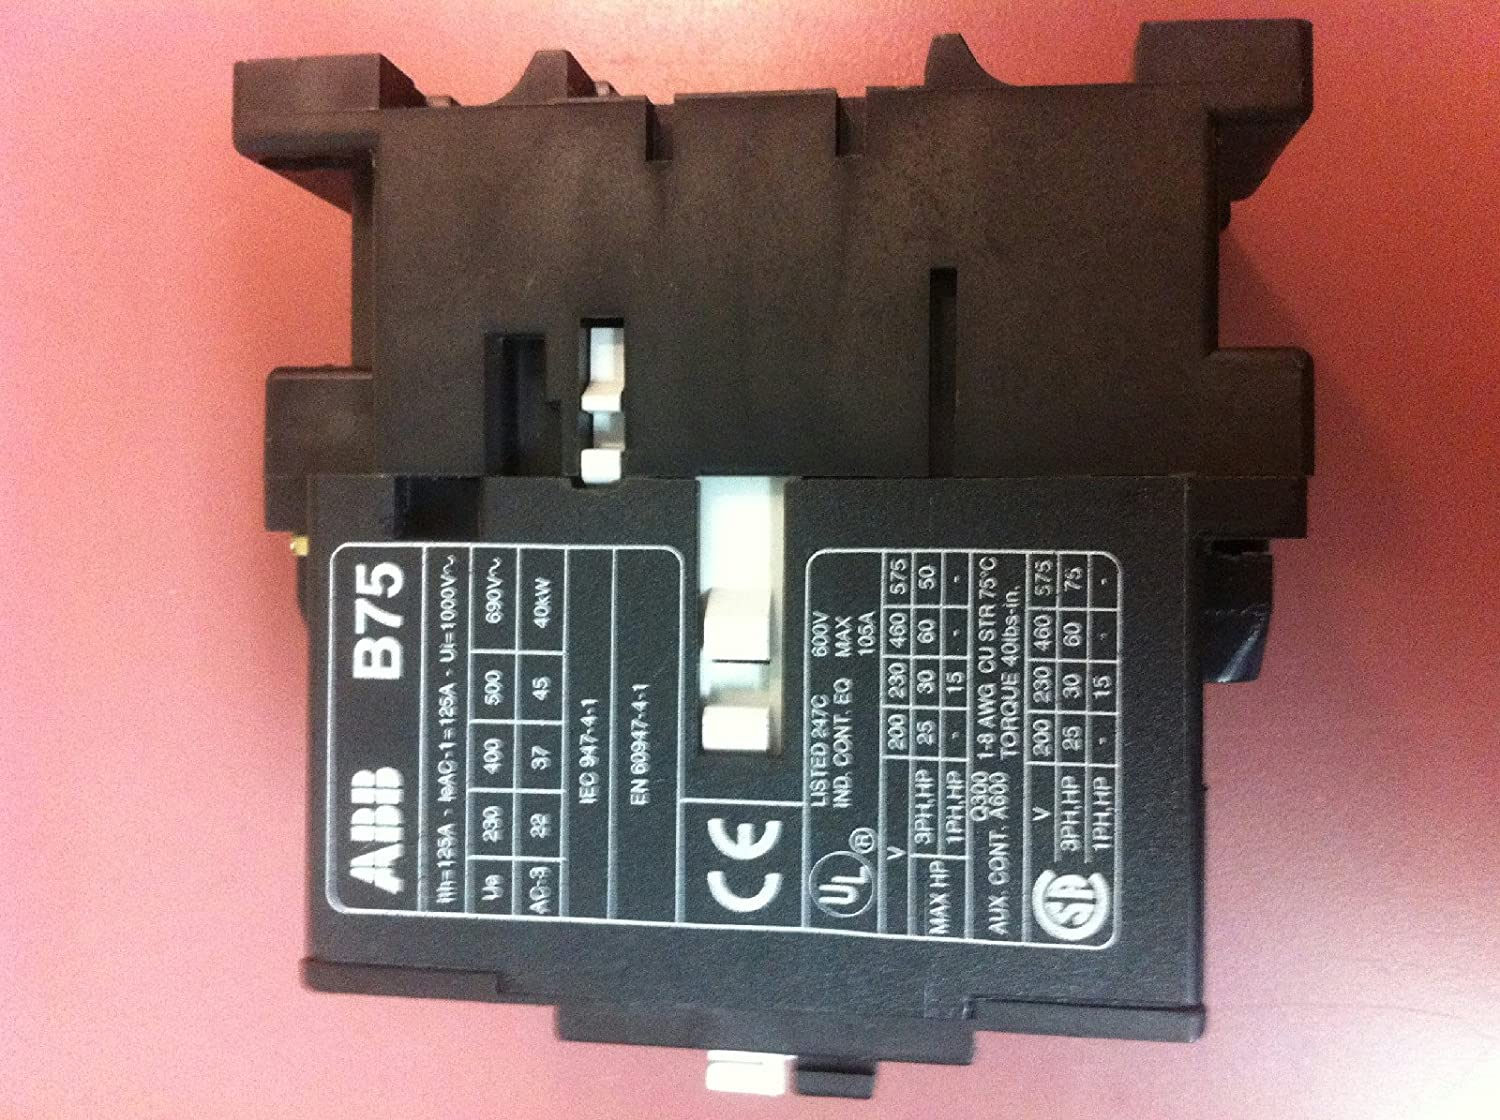 ABB B BC  AMP  VAC  HP V Coil Contactor Amazon - Abb basic relay school